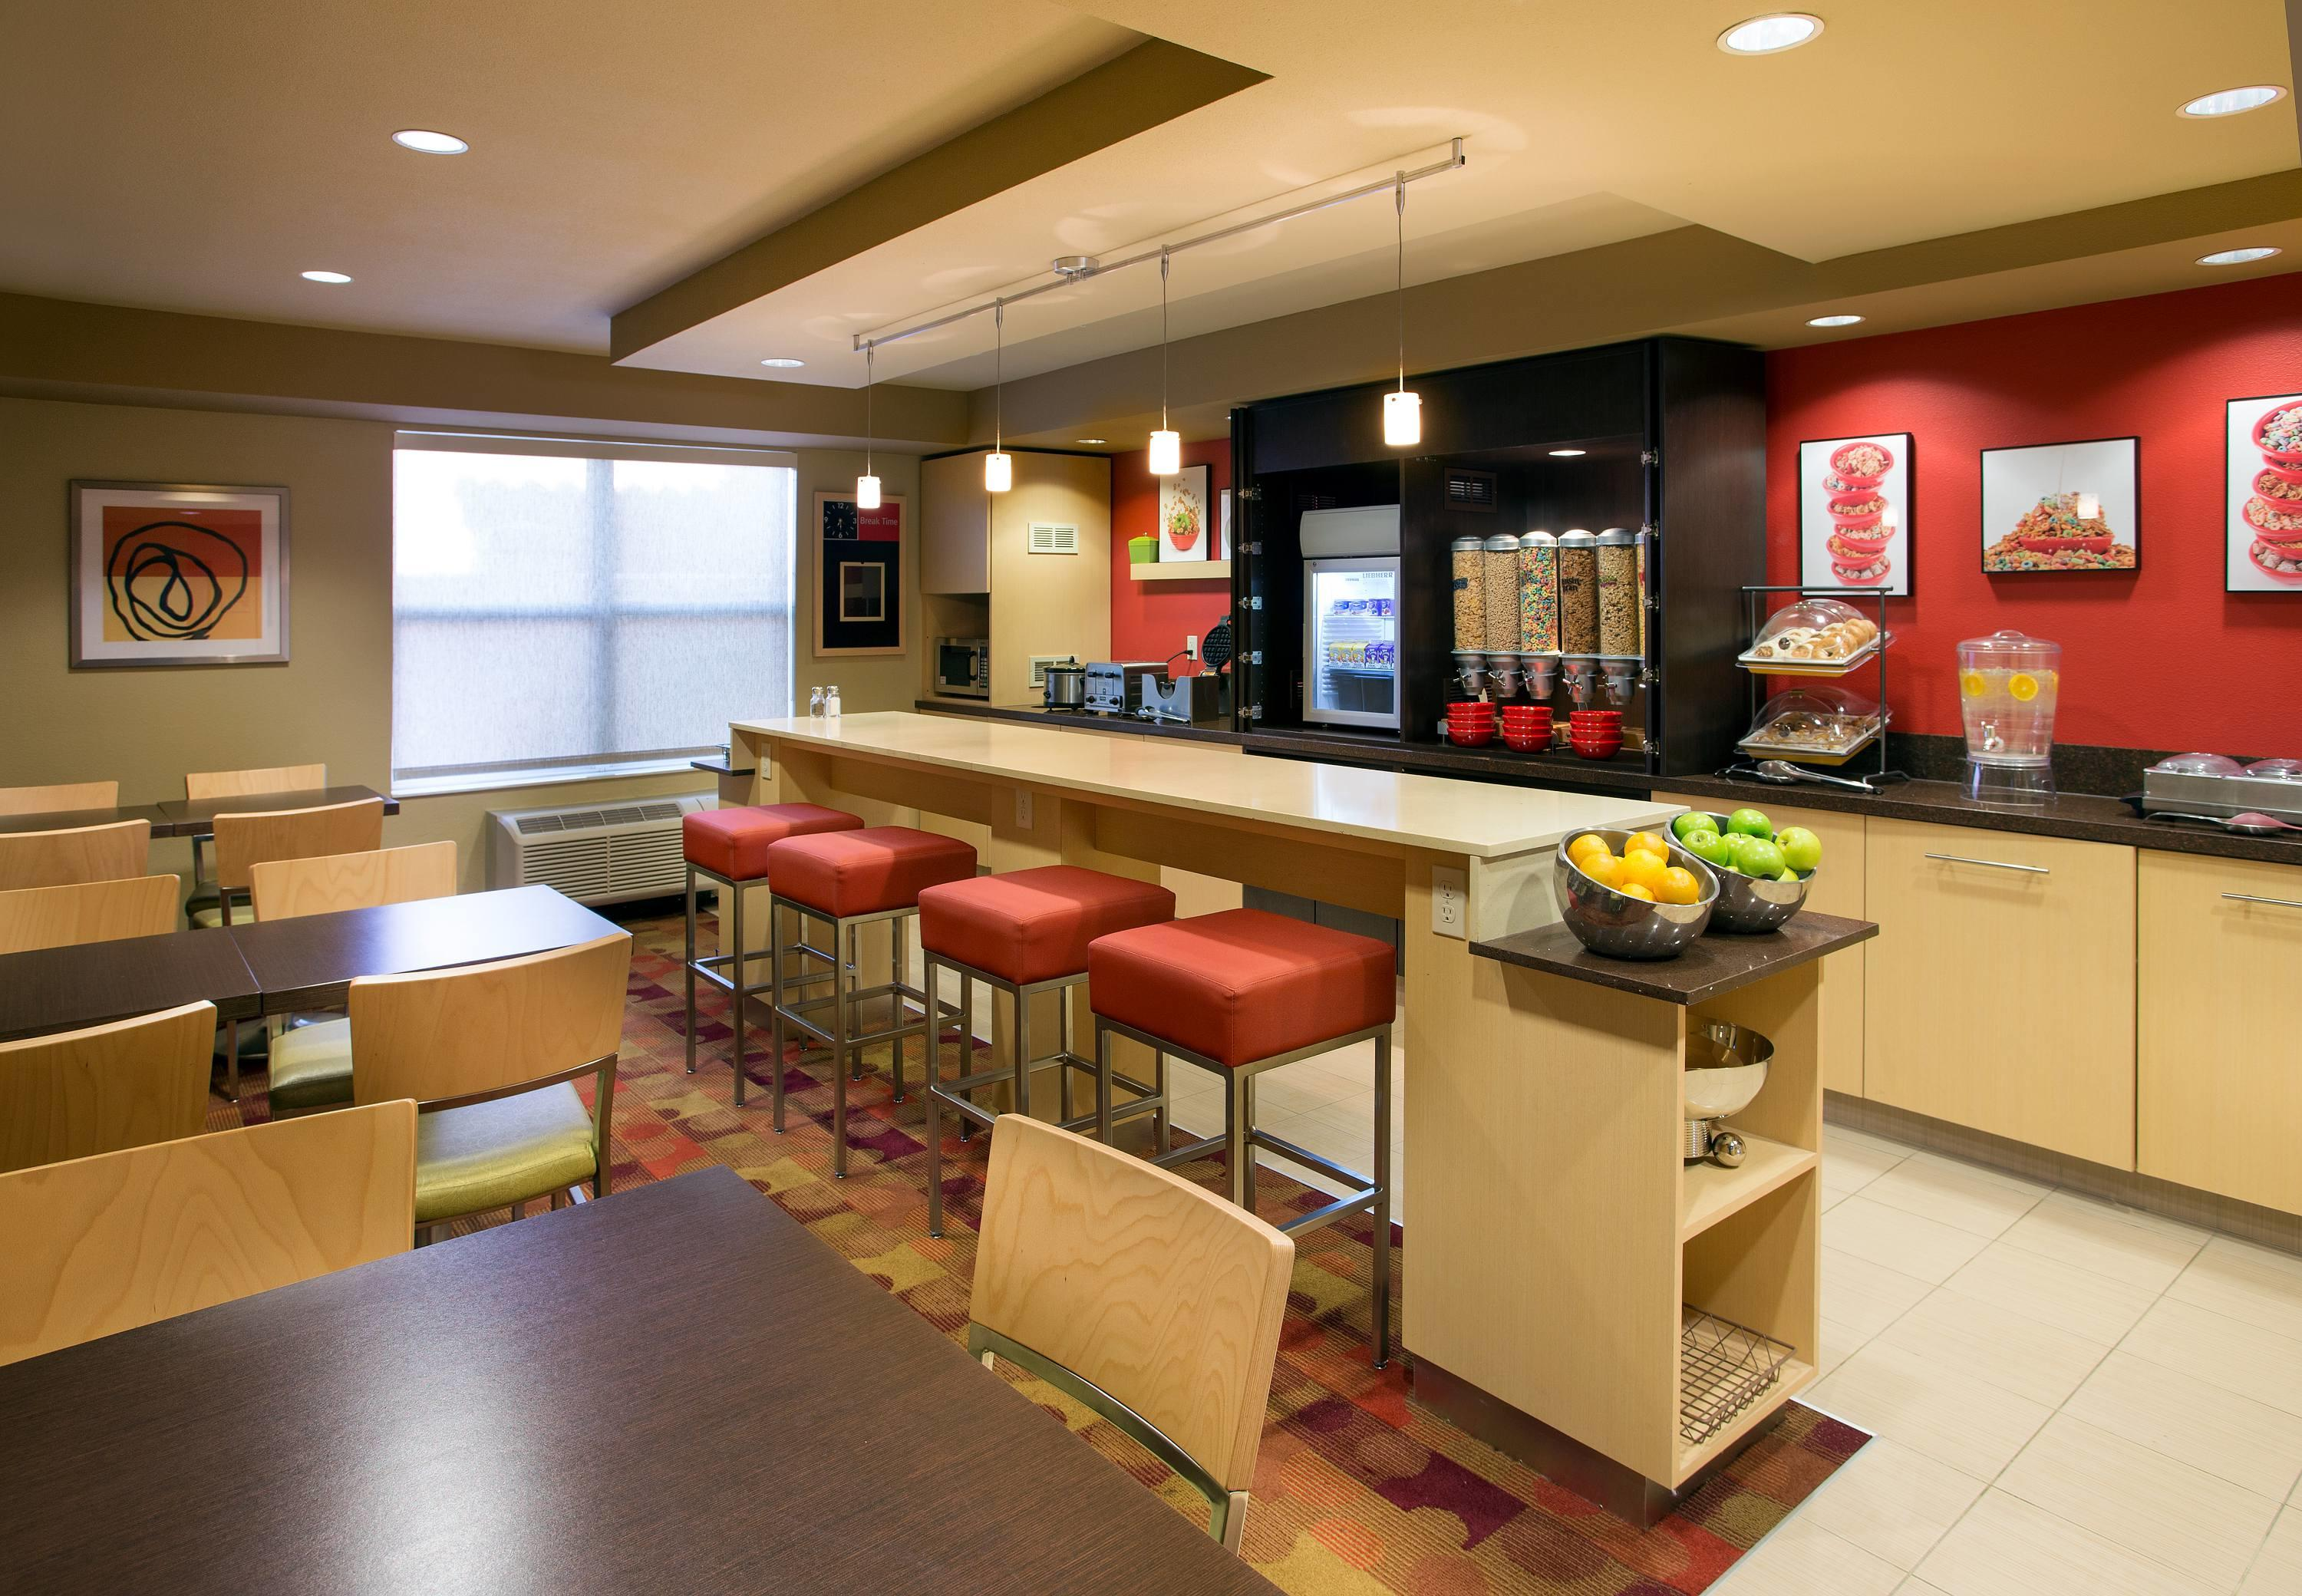 TownePlace Suites by Marriott Scottsdale image 6